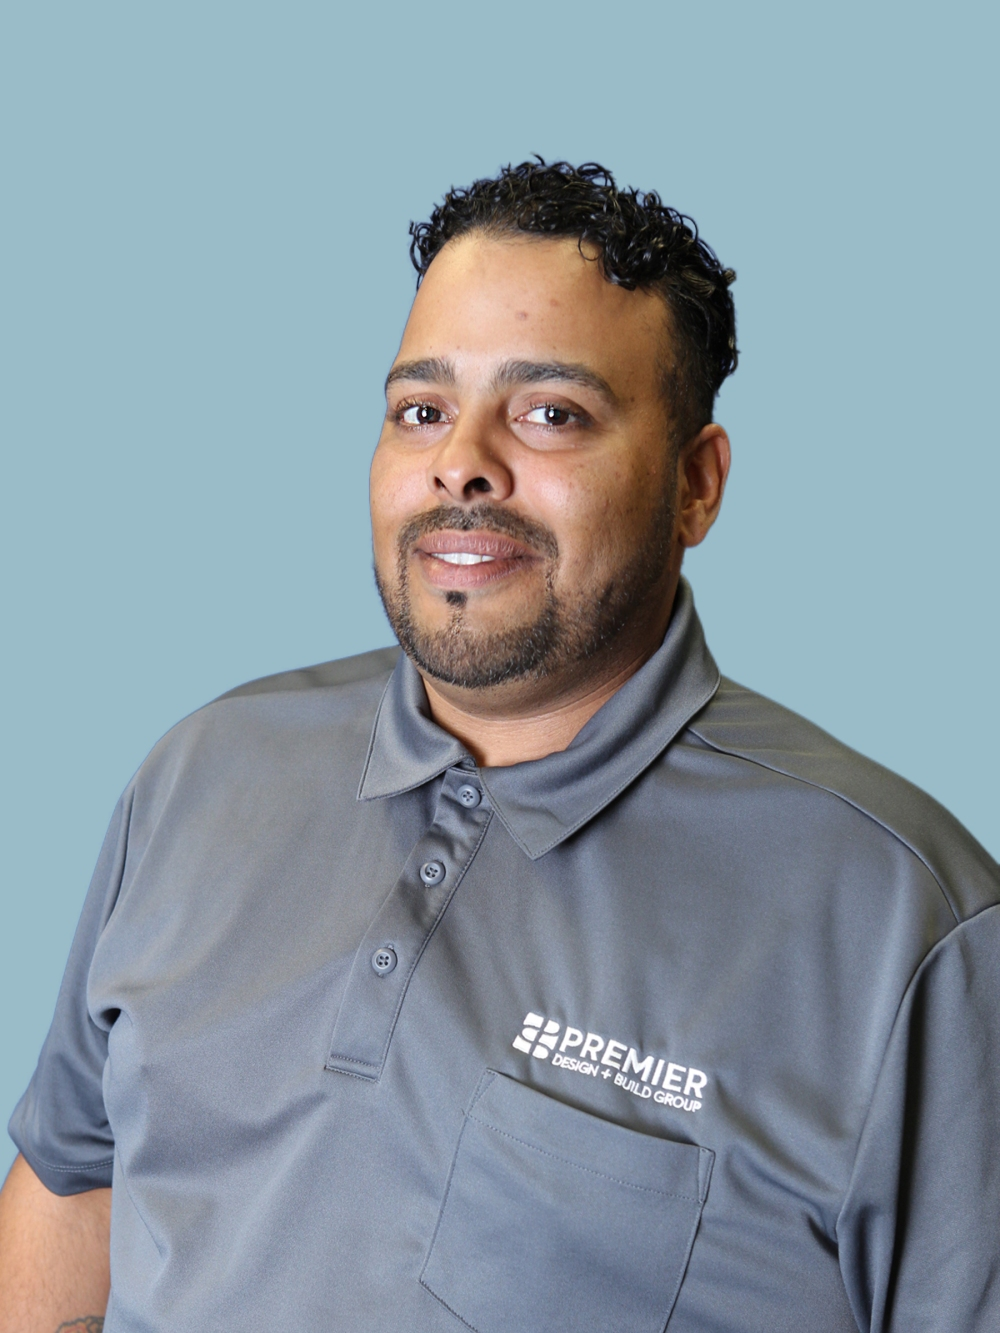 premier-design-build-corporate-headshot-nj-3